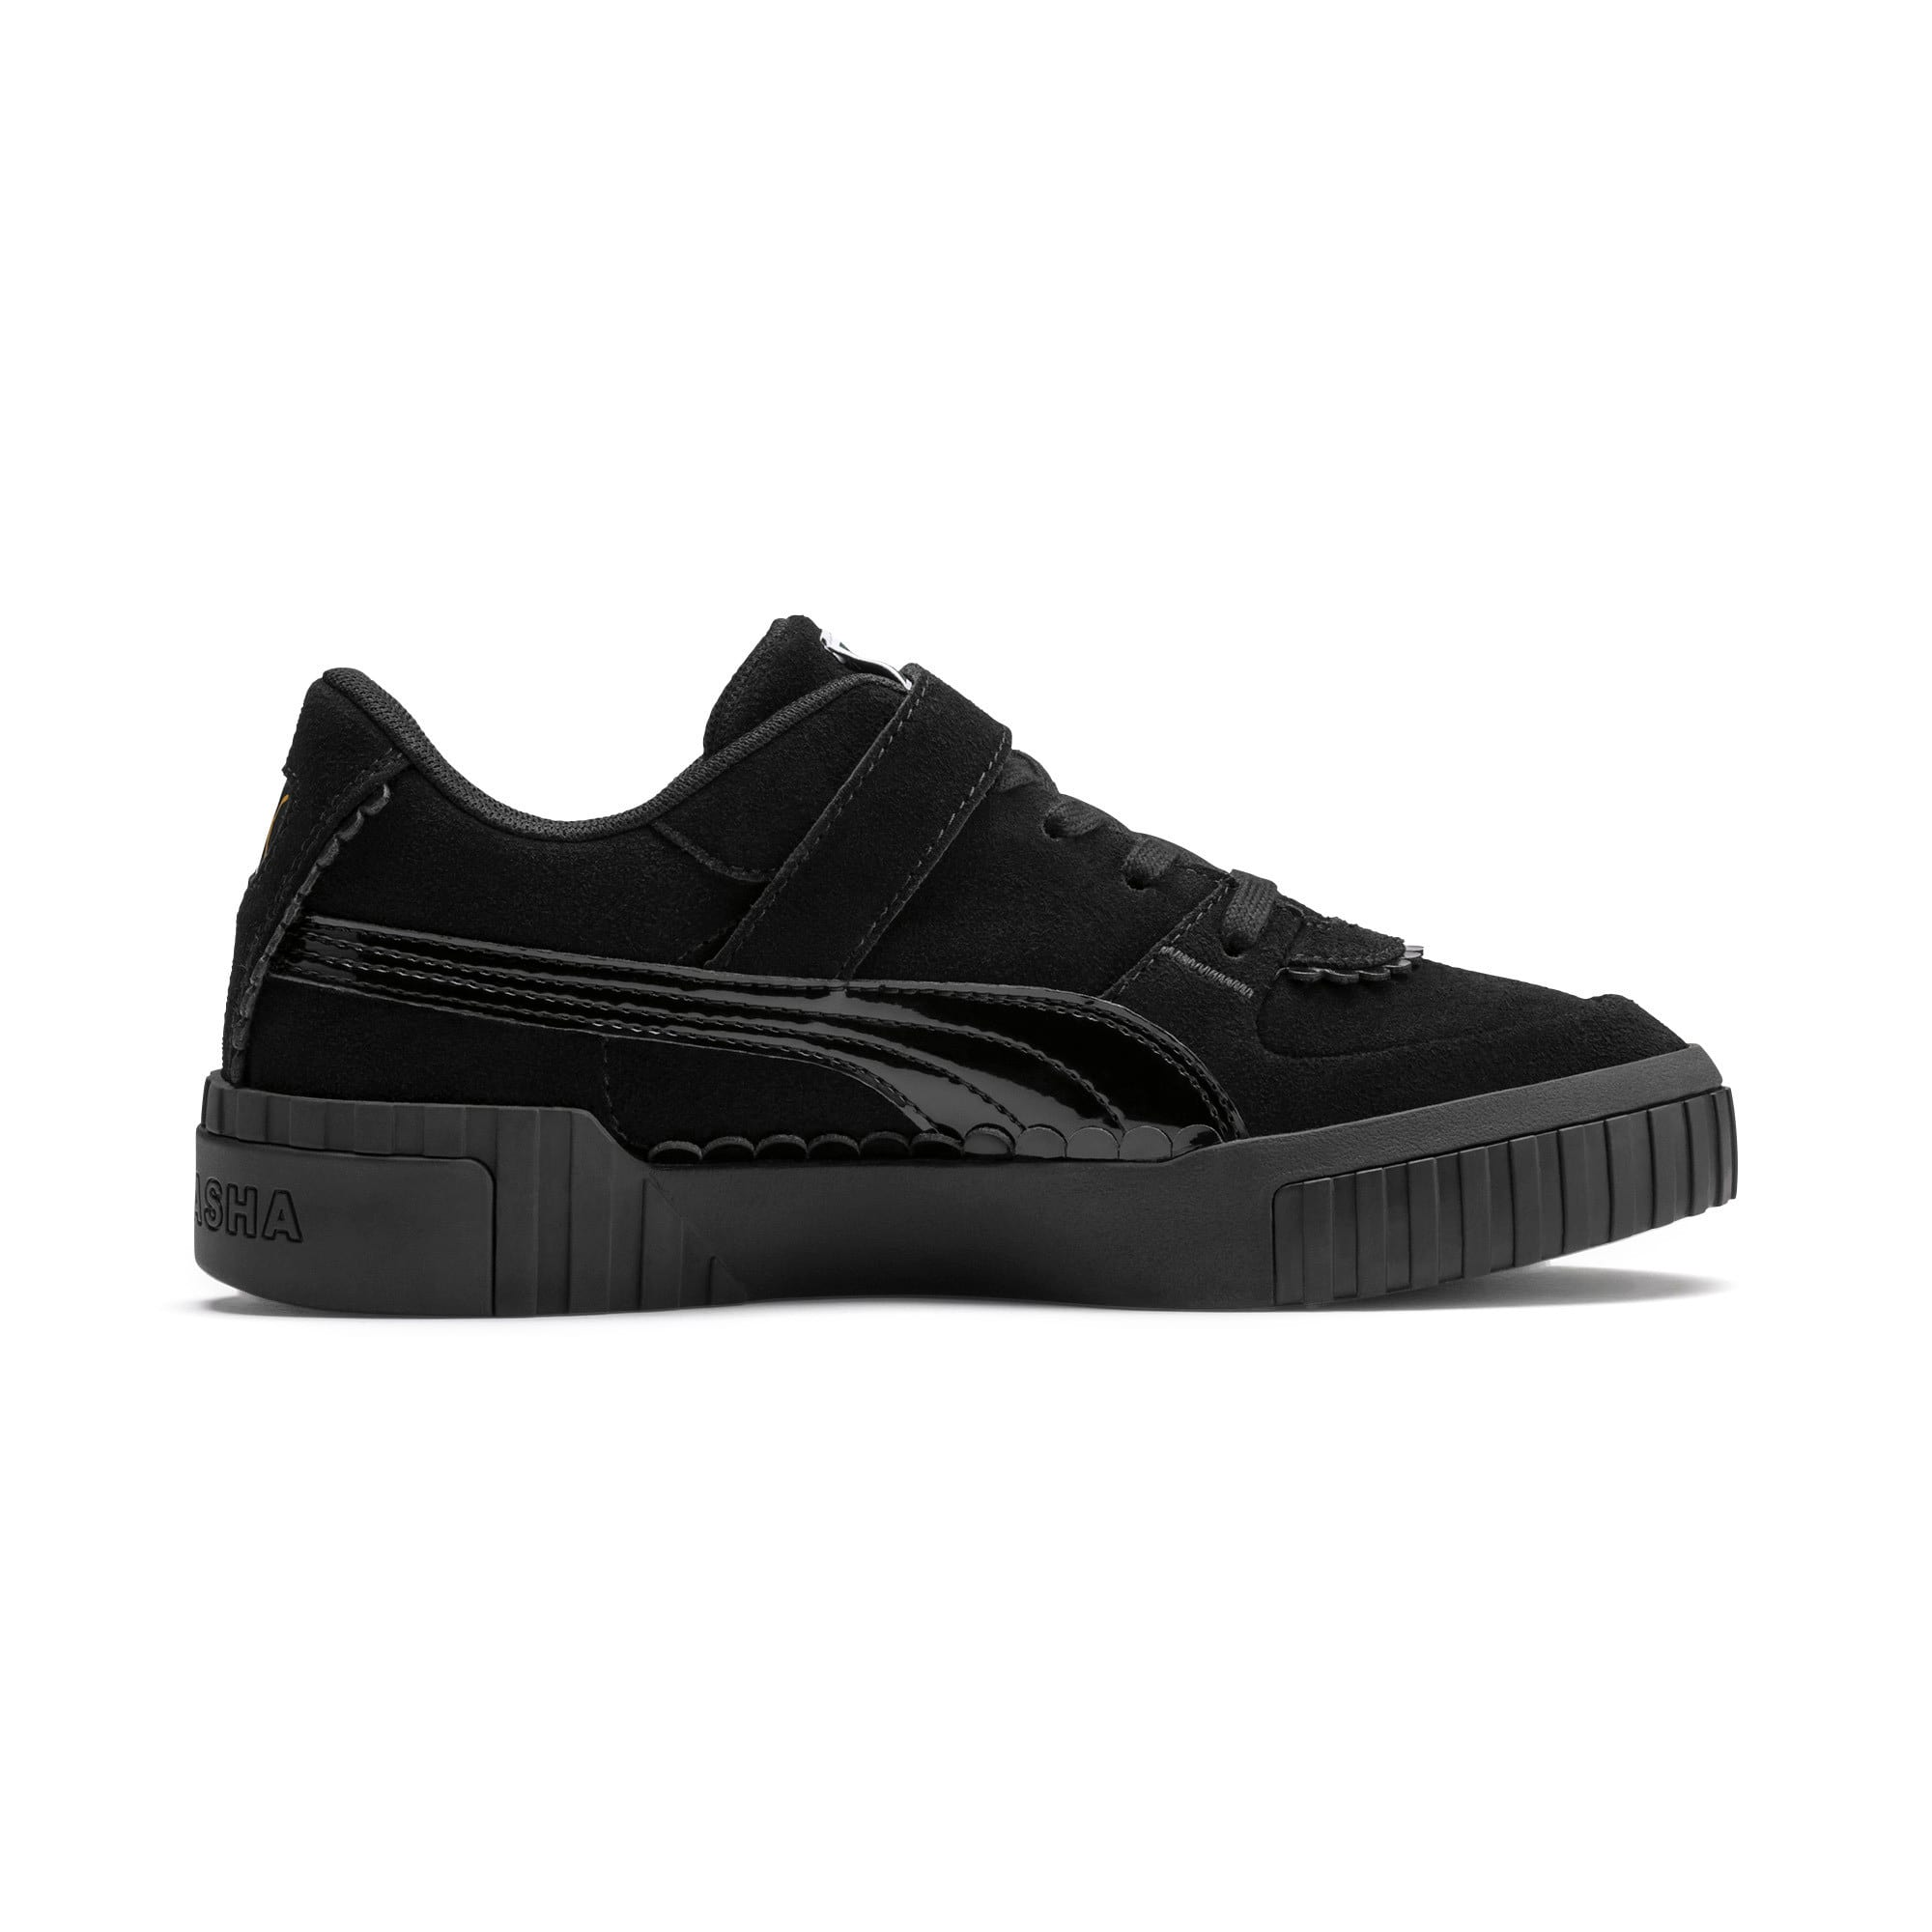 Thumbnail 6 of PUMA x TYAKASHA Cali Women's Trainers, Puma Black, medium